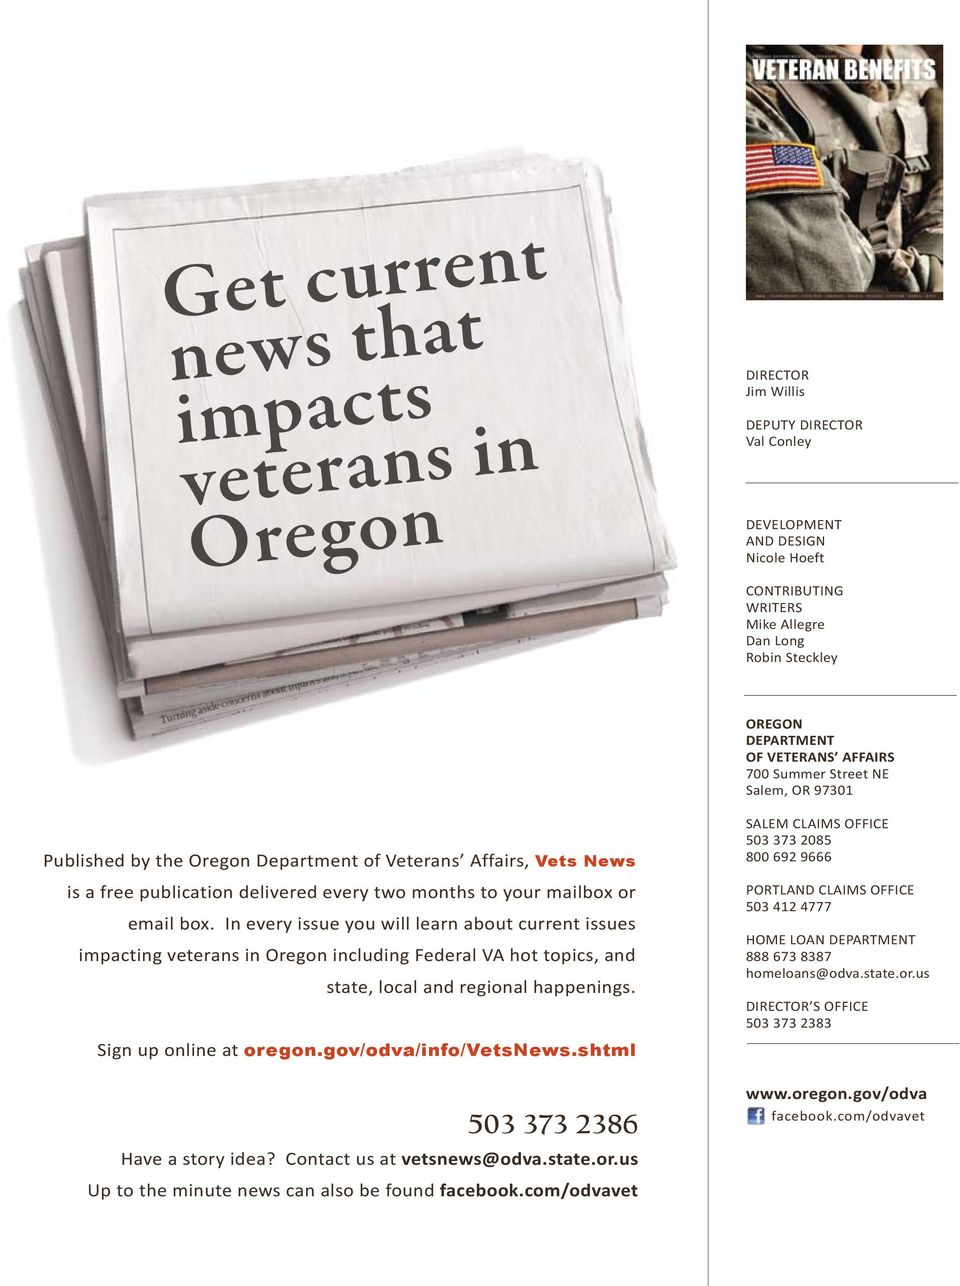 or email box. In every issue you will learn about current issues impacting veterans in Oregon including Federal VA hot topics, and state, local and regional happenings. Sign up online at oregon.